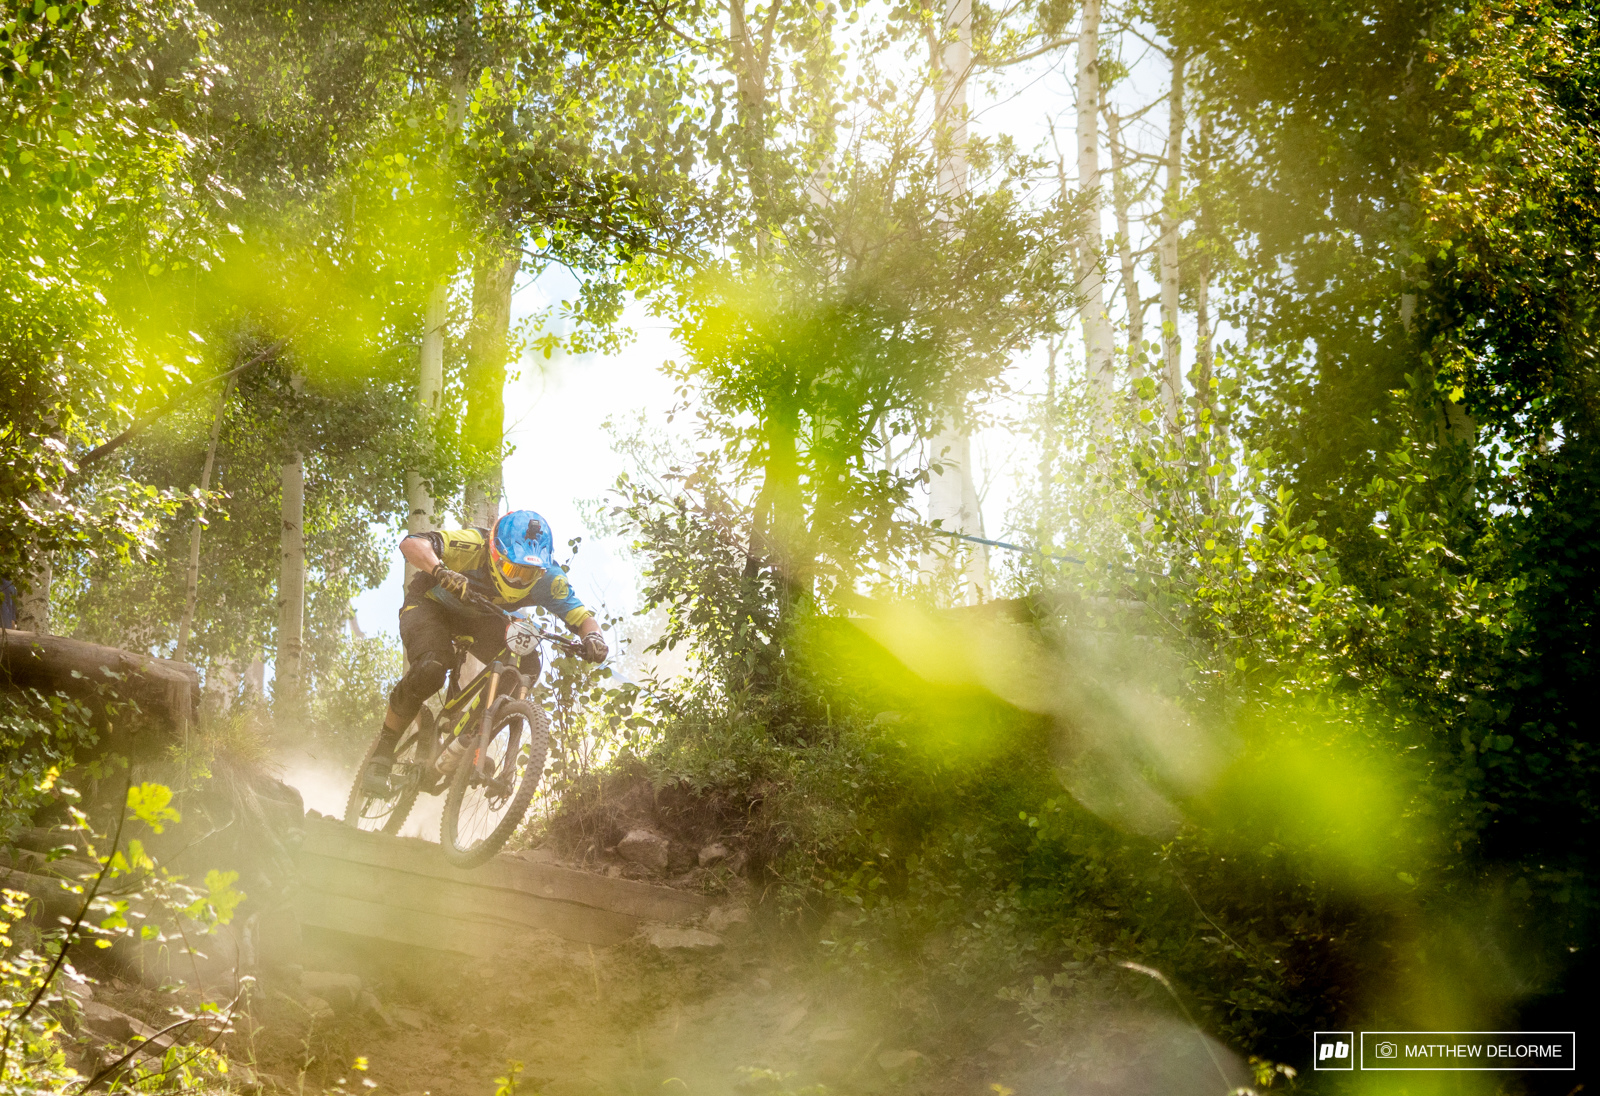 Wyn Masters has no issues with loose riding. Here he charges the drops like only a Kiwi can.